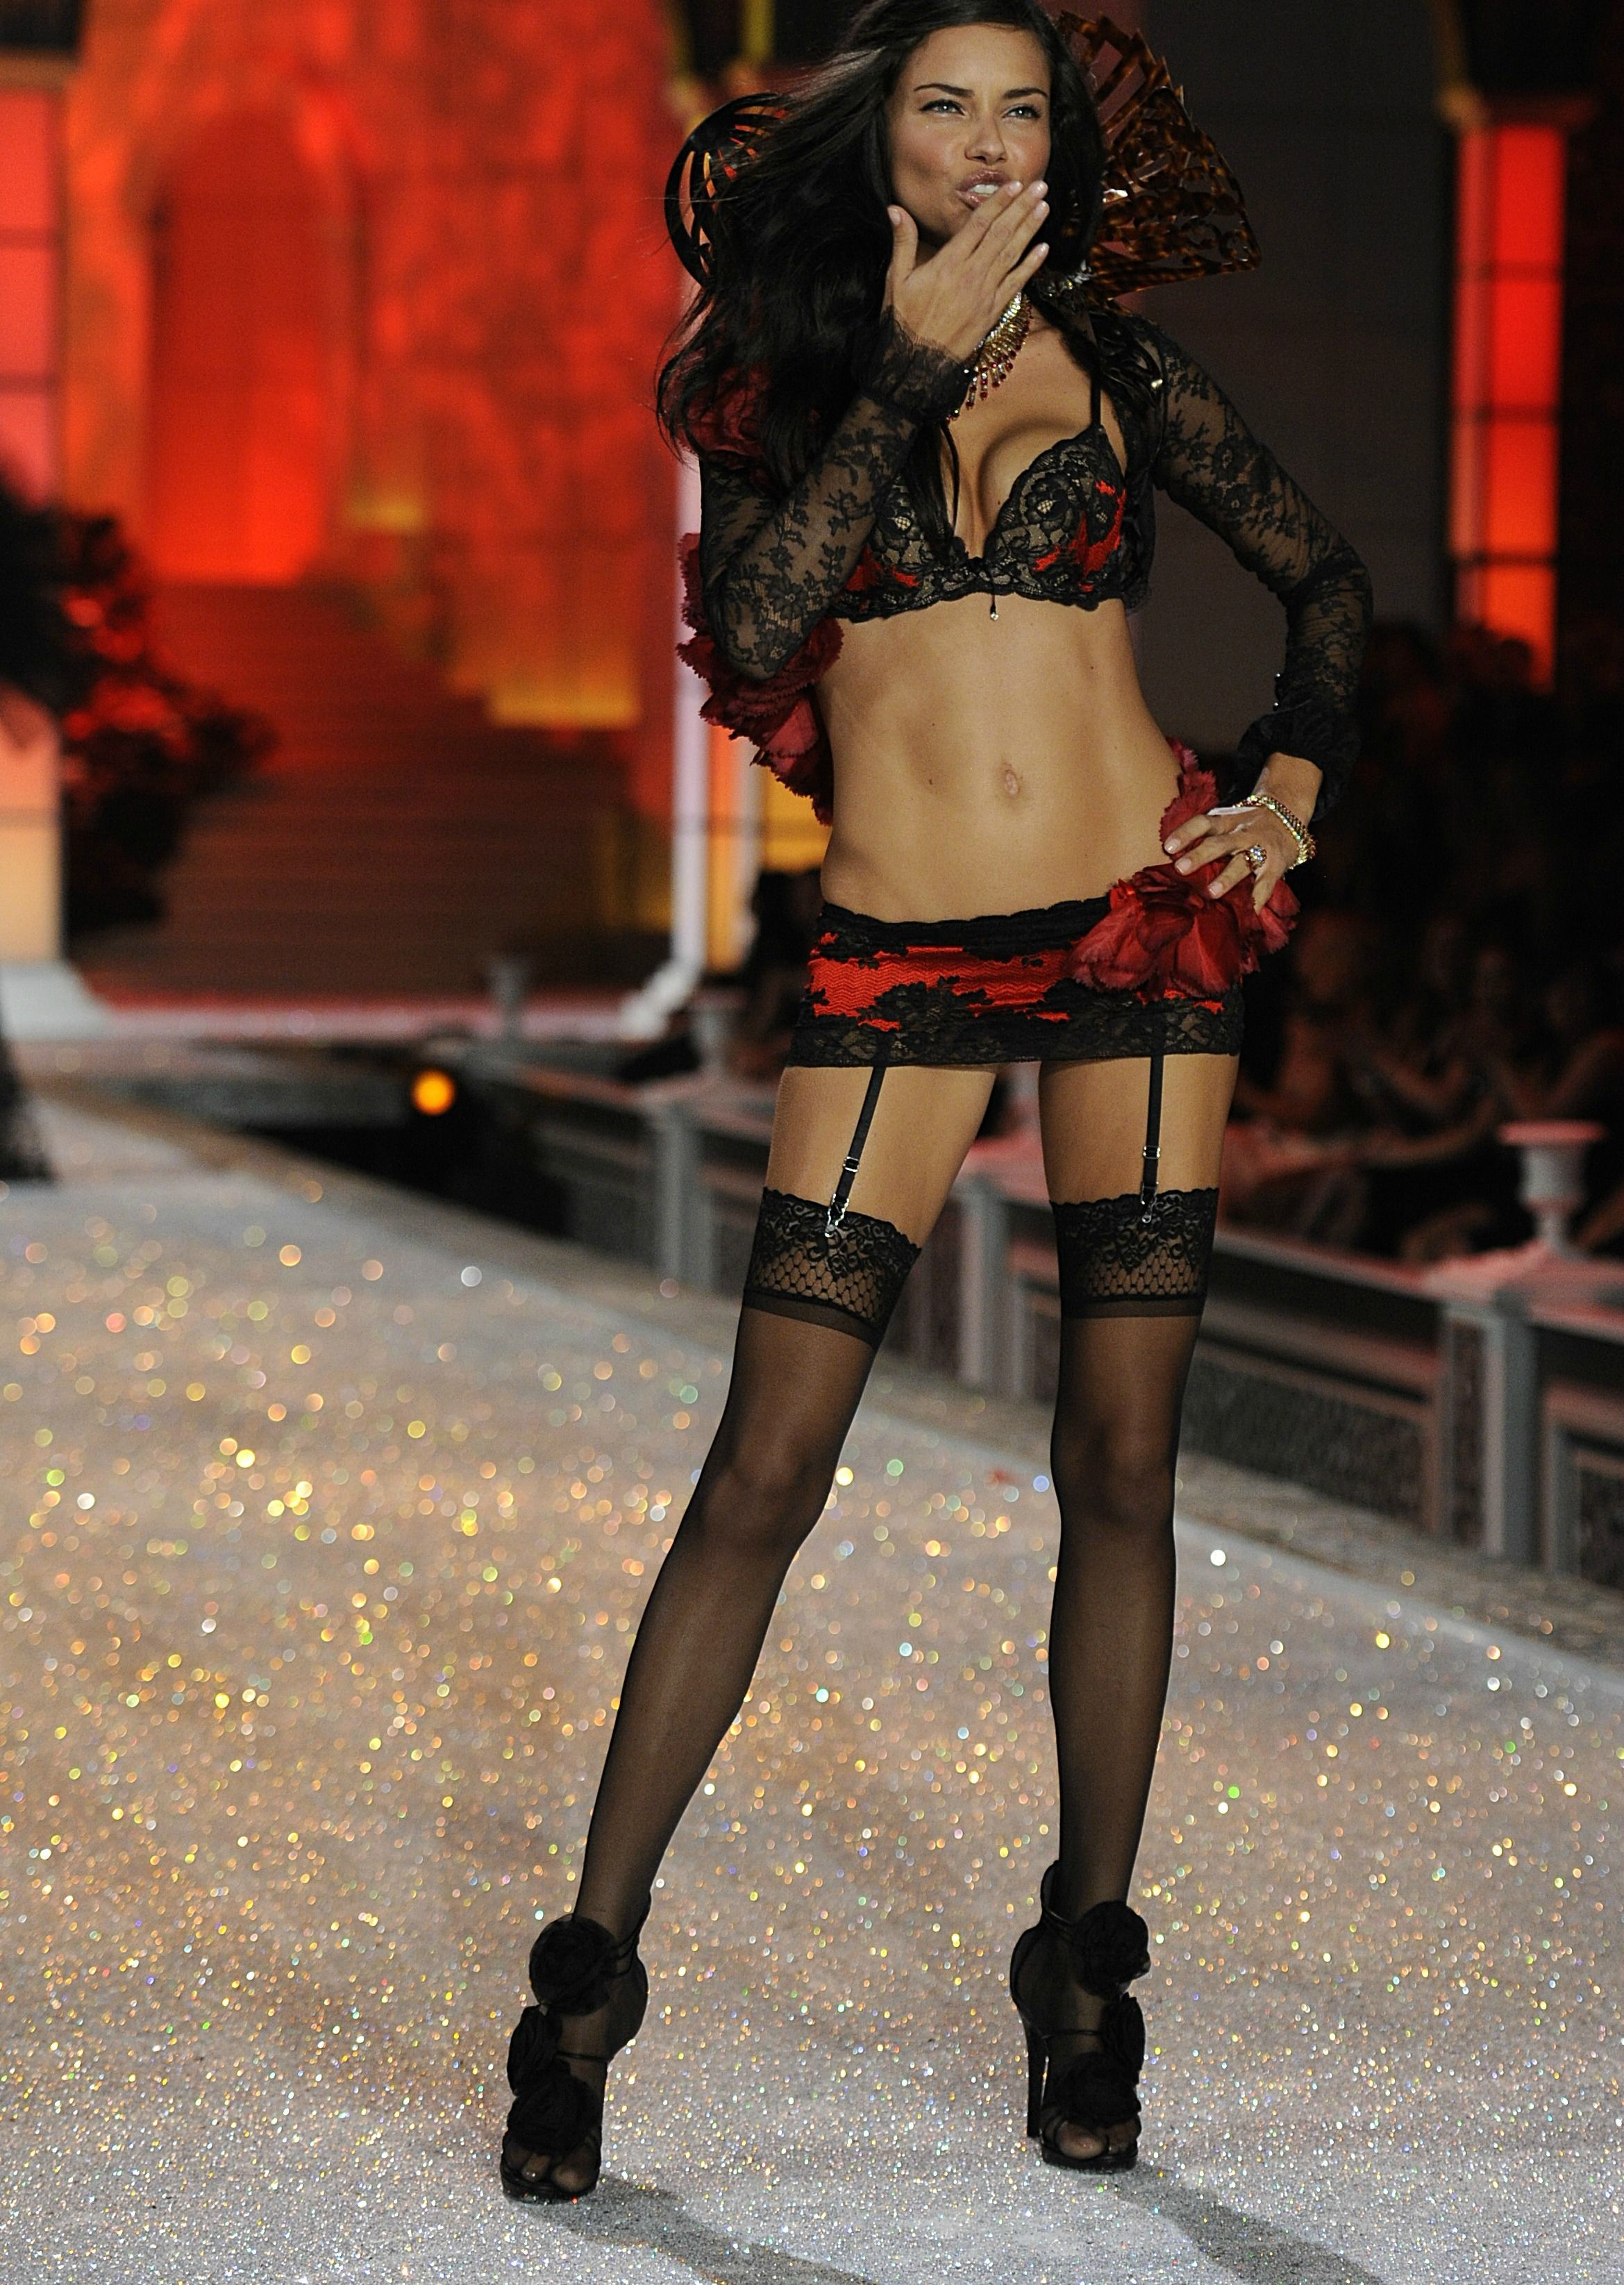 aad9262347 VSFS 2011 Passion. Find this Pin and more on Victoria s Secret Fashion Show  ...